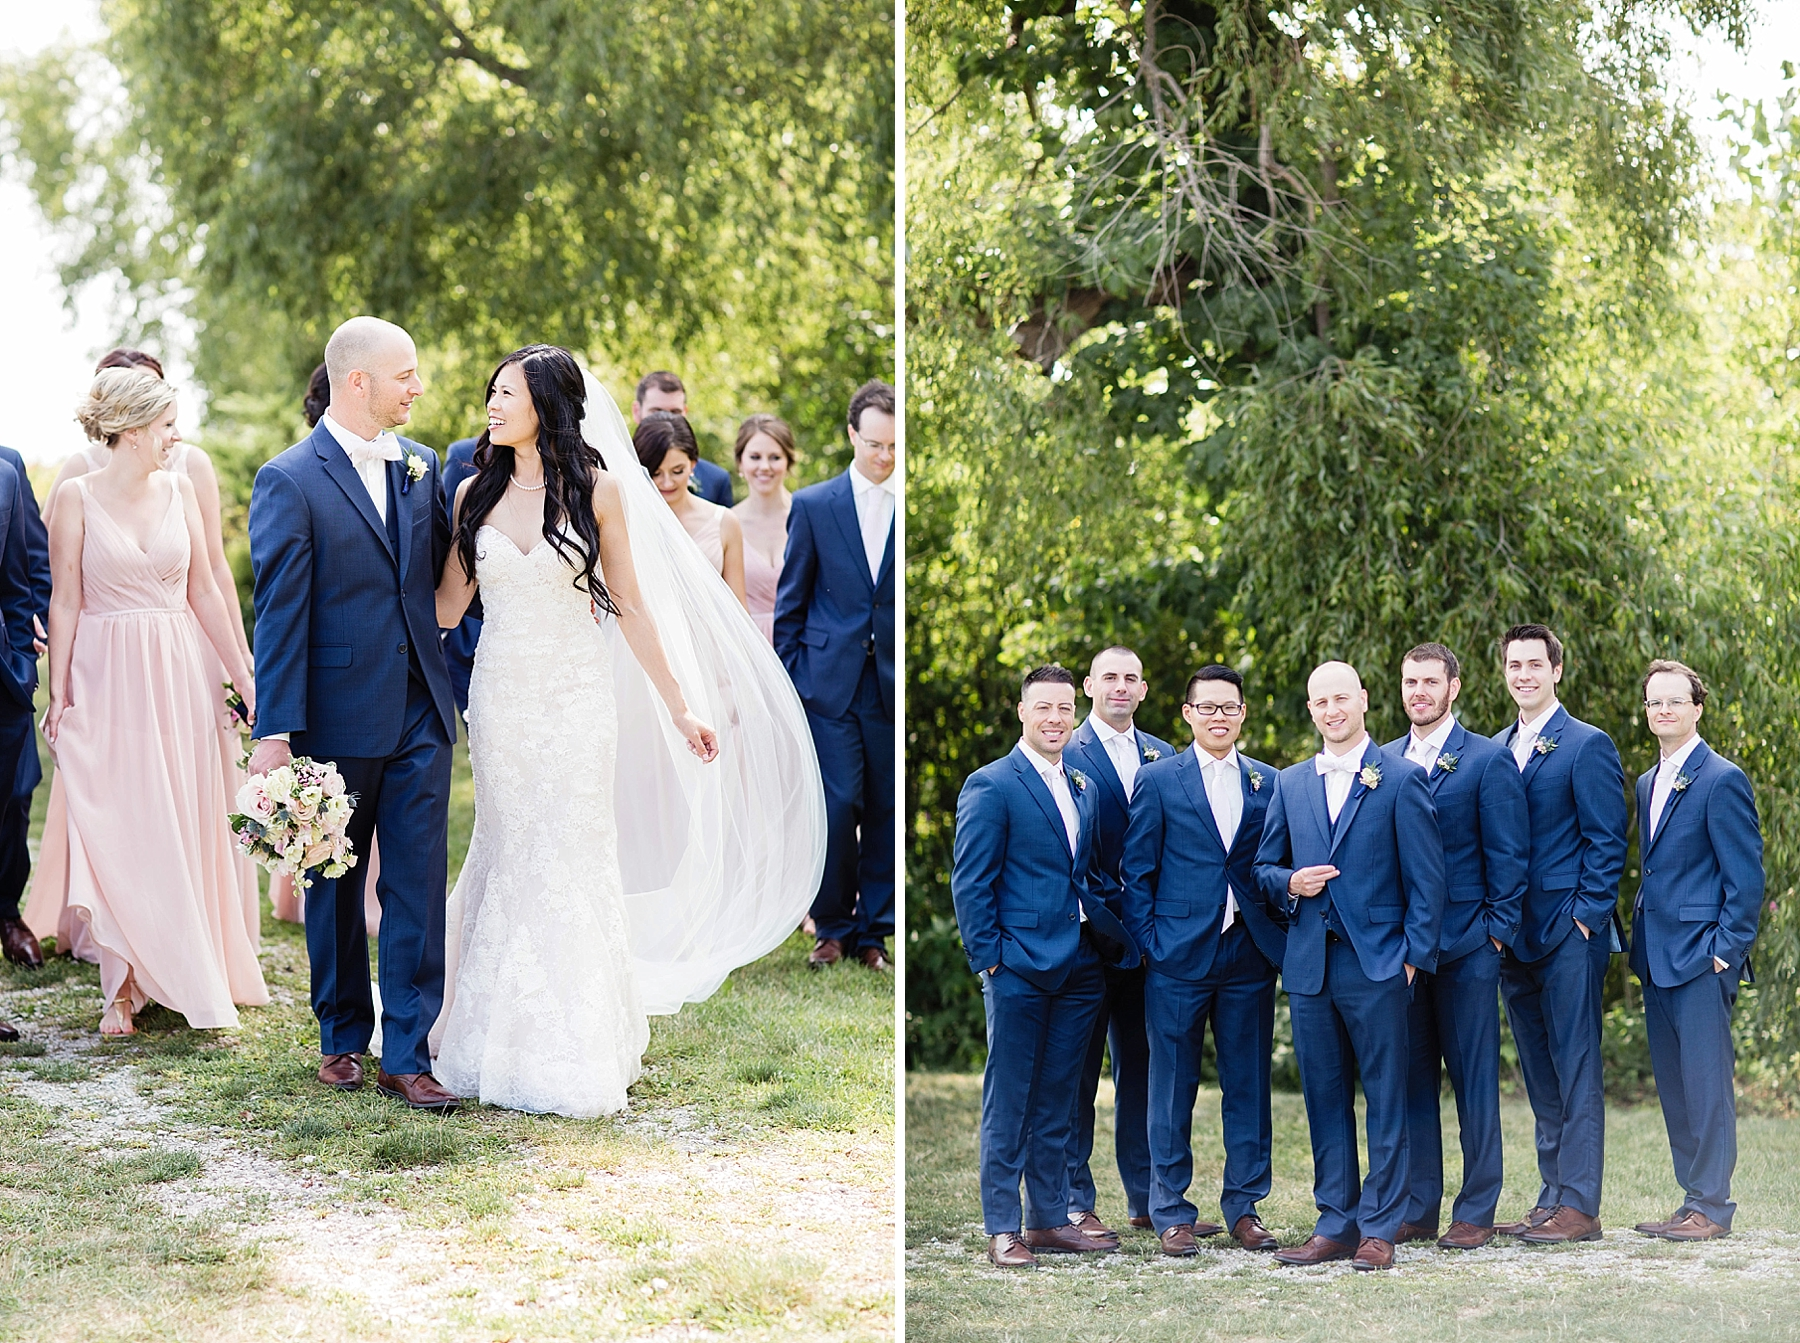 windsor-wedding-photographer-winery-wedding-ontario-sprucewood-shores-niagara-on-the-lake-wedding-photography-eryn-shea-photography_0015.jpg